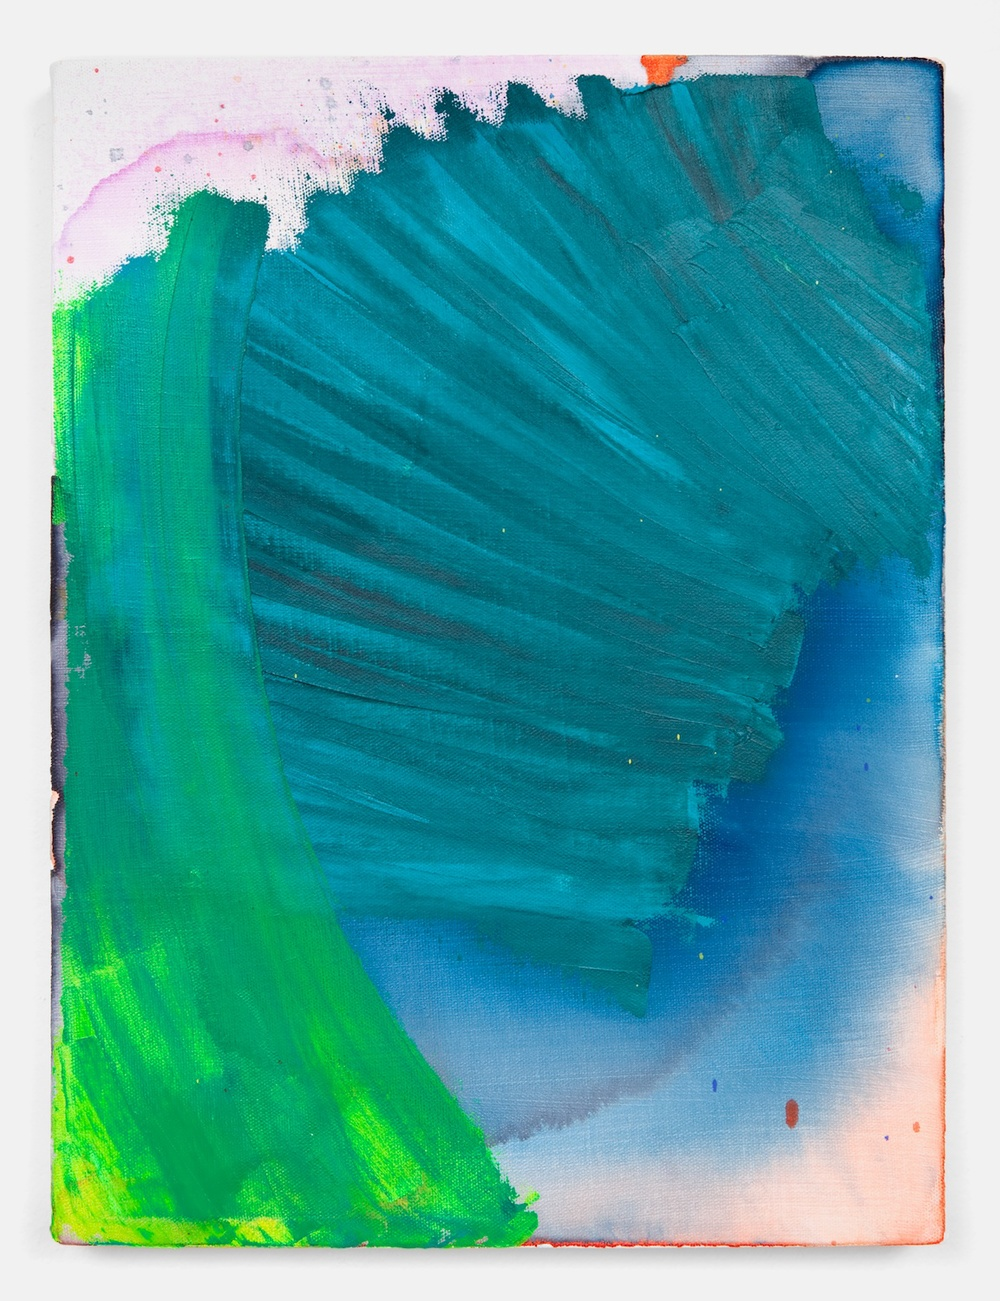 "Joanne Greenbaum Untitled 2011 Oil, acrylic and mixed media on linen 16"" x 12"" JG045"